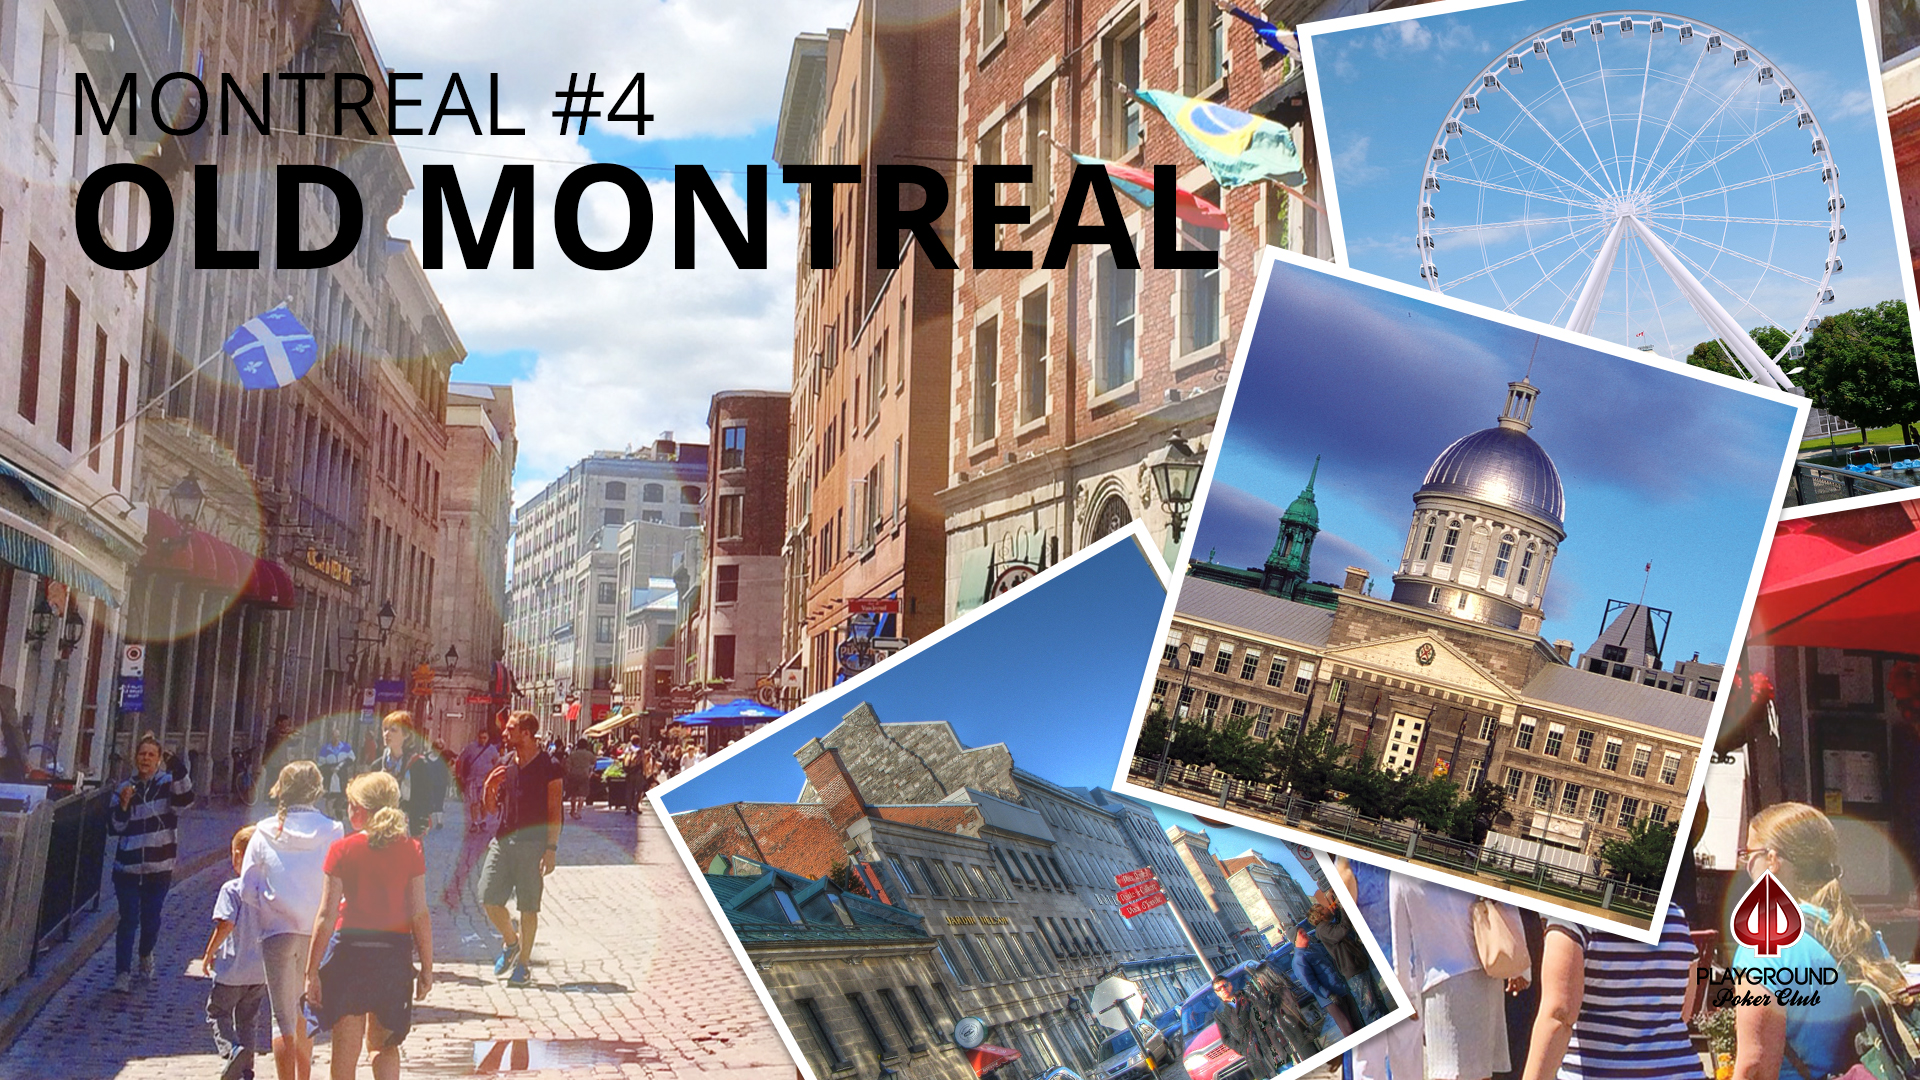 Number 4 on our Top 10 – Old Montreal